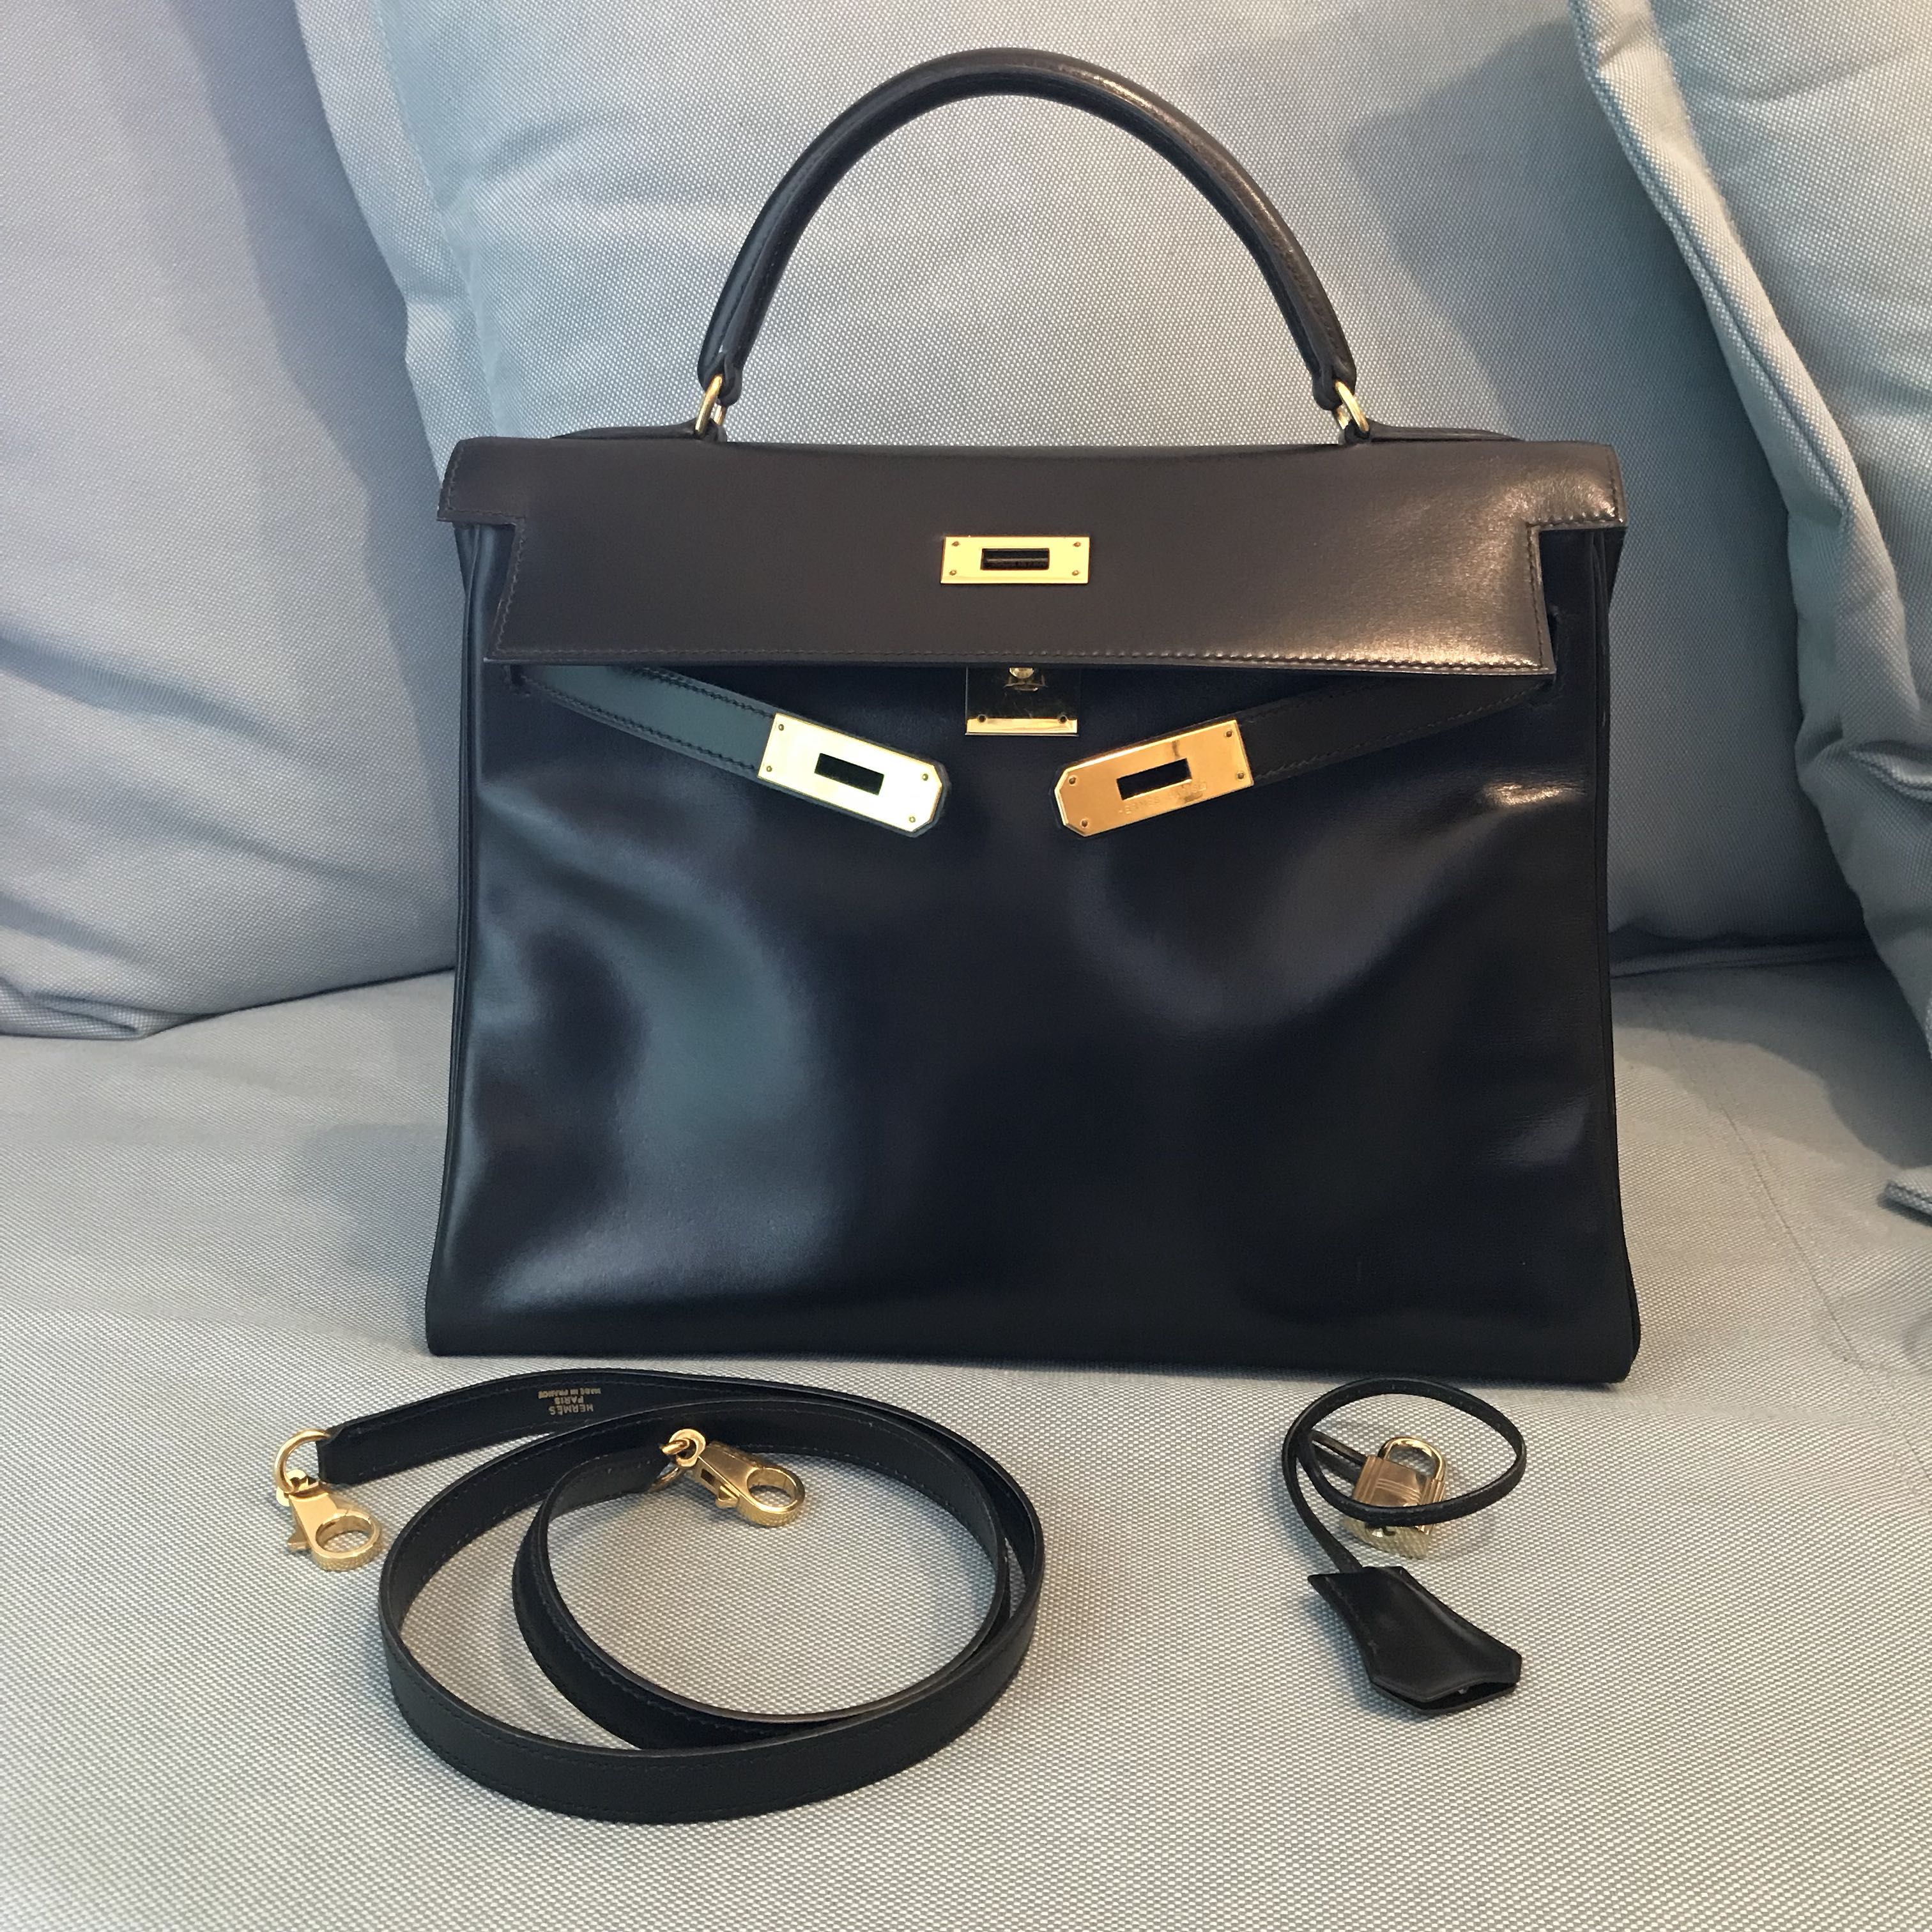 1069eb01a9 Authentic vintage Hermes Kelly 32 in Black Box Leather, Luxury, Bags &  Wallets on Carousell